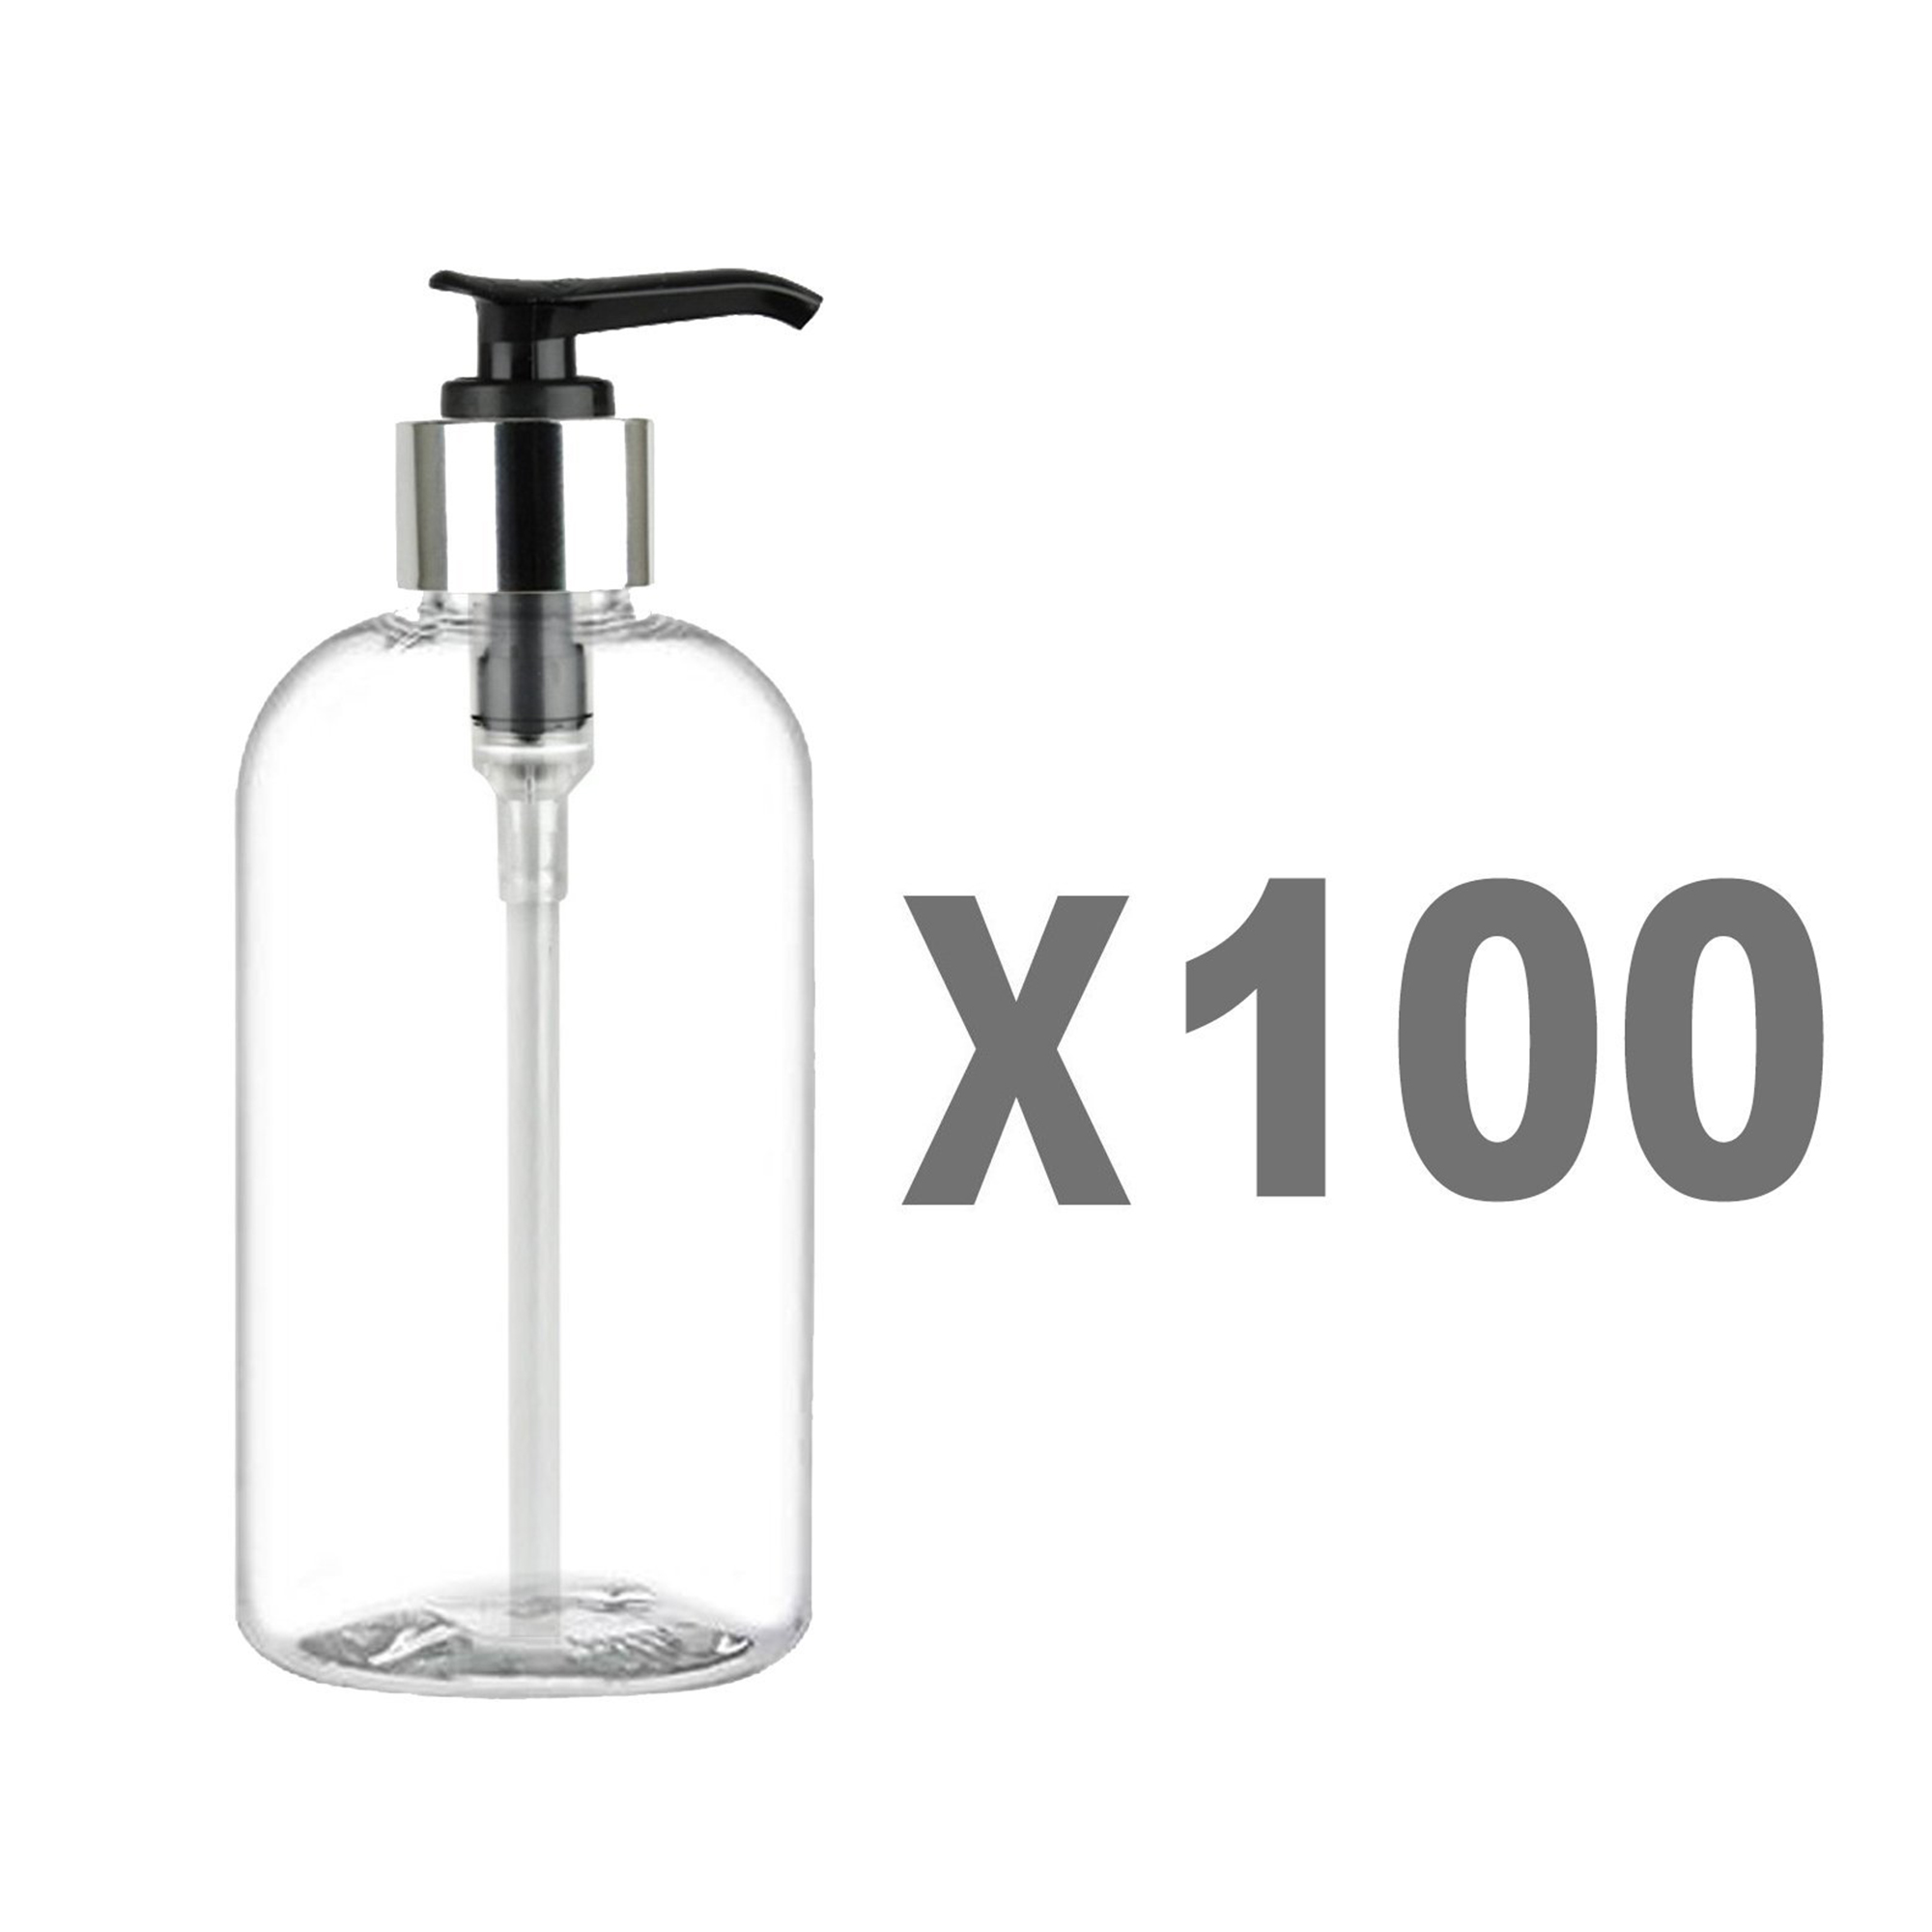 cc41e2734427 MoYo Natural Labs 8 oz Pump Dispenser, Boston Round Empty Soap Lotion Pump  Bottles with Silver Tone Locking Cap, BPA Free PET Plastic Containers for  ...